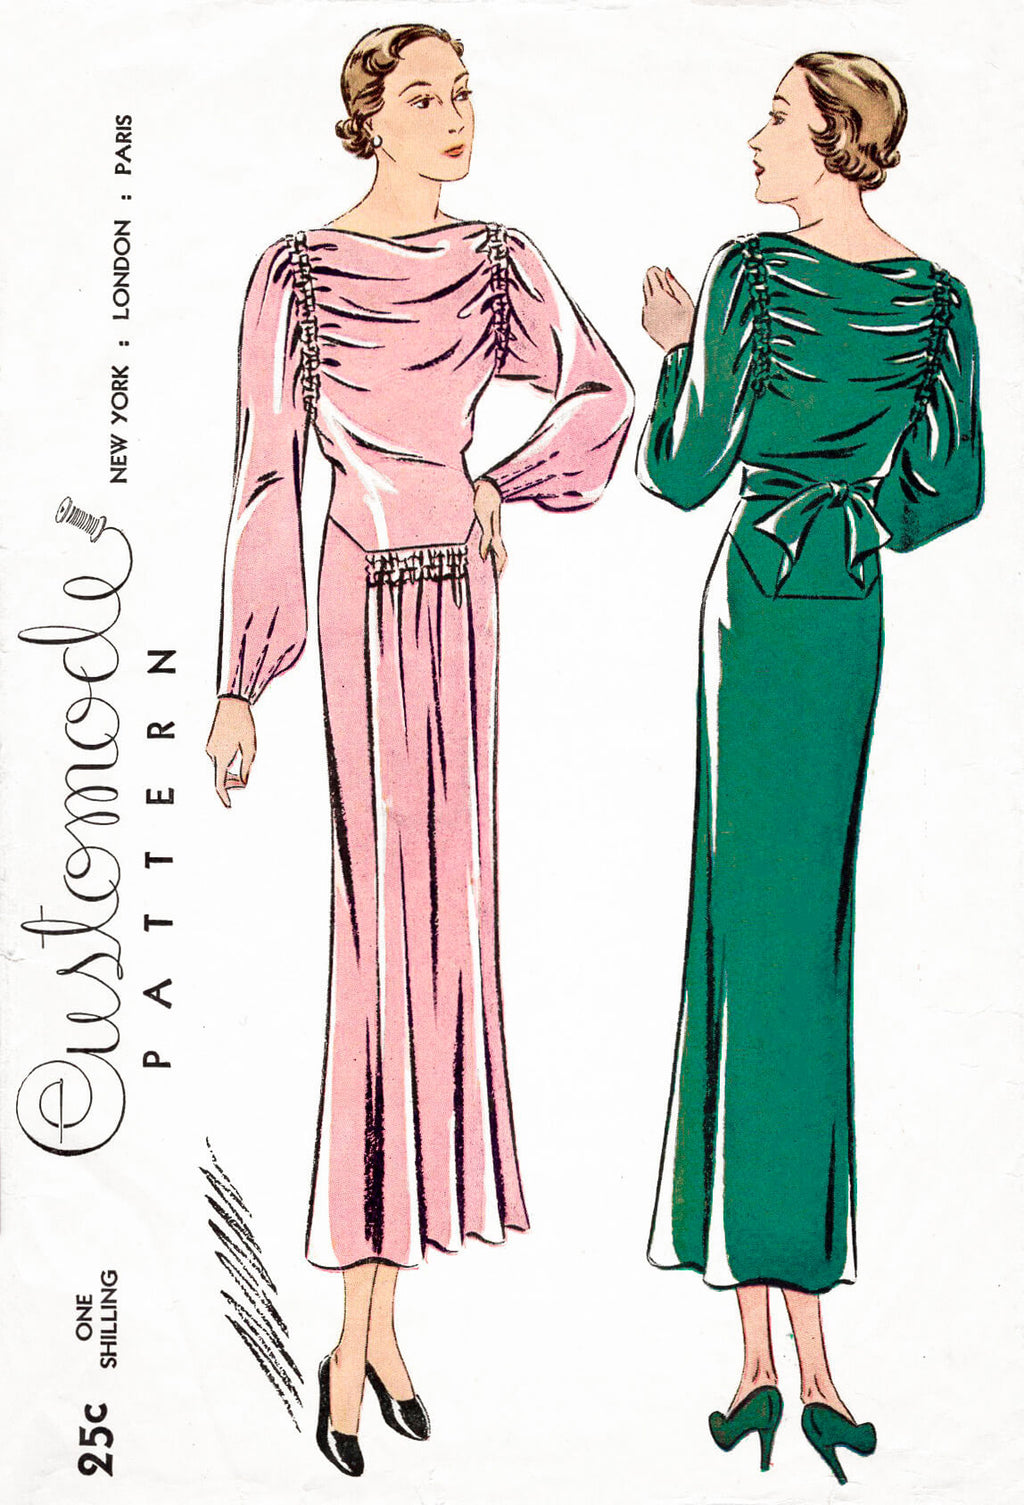 1930s 30s Simplicity Customode 8134 art deco dress shirring detail draped bateau neckline vintage sewing pattern reproduction